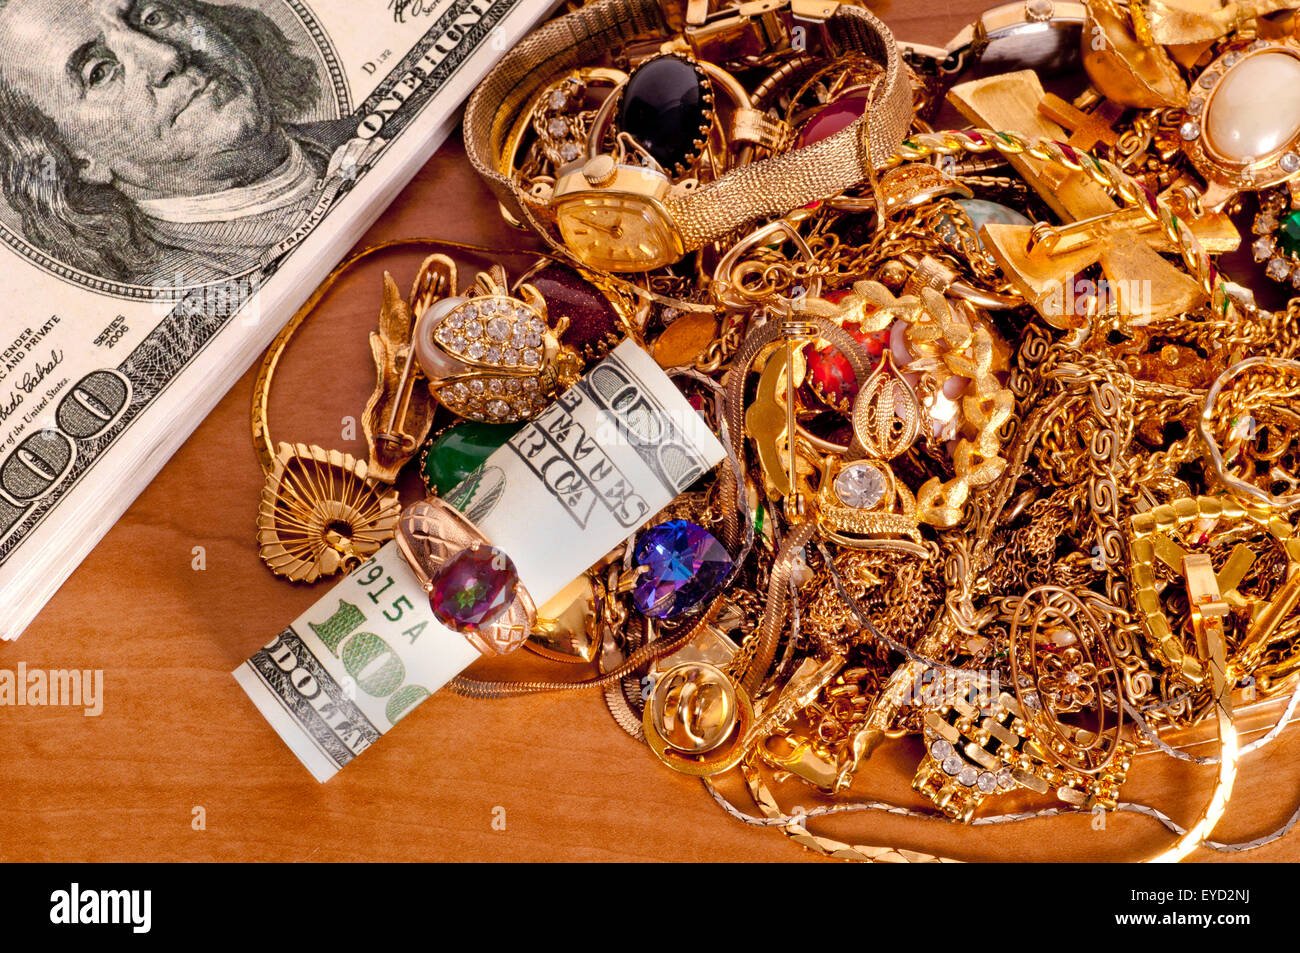 Make money selling gold scrap jewelry concept. - Stock Image